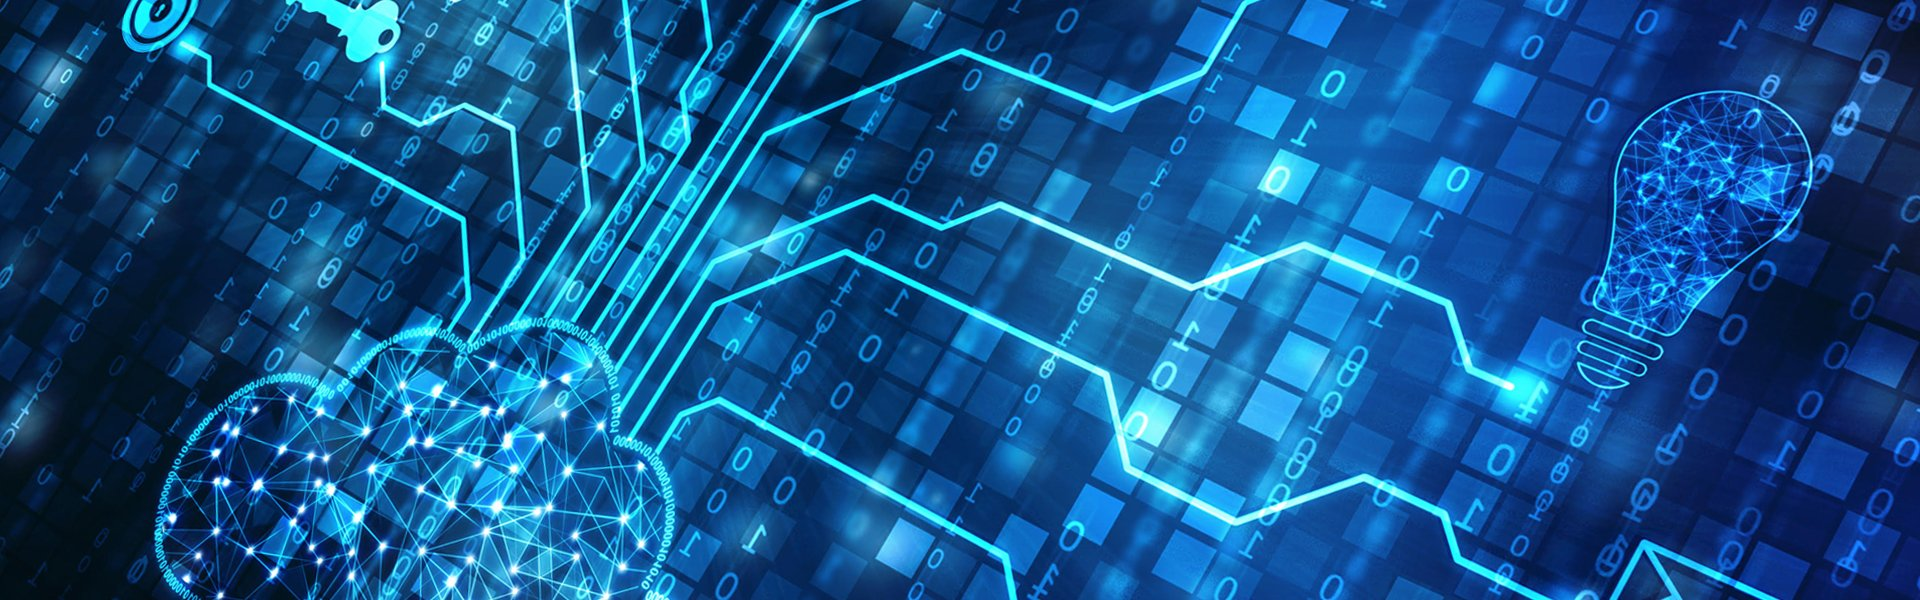 Using Data-as-a-Service to Accelerate Digital Initiatives